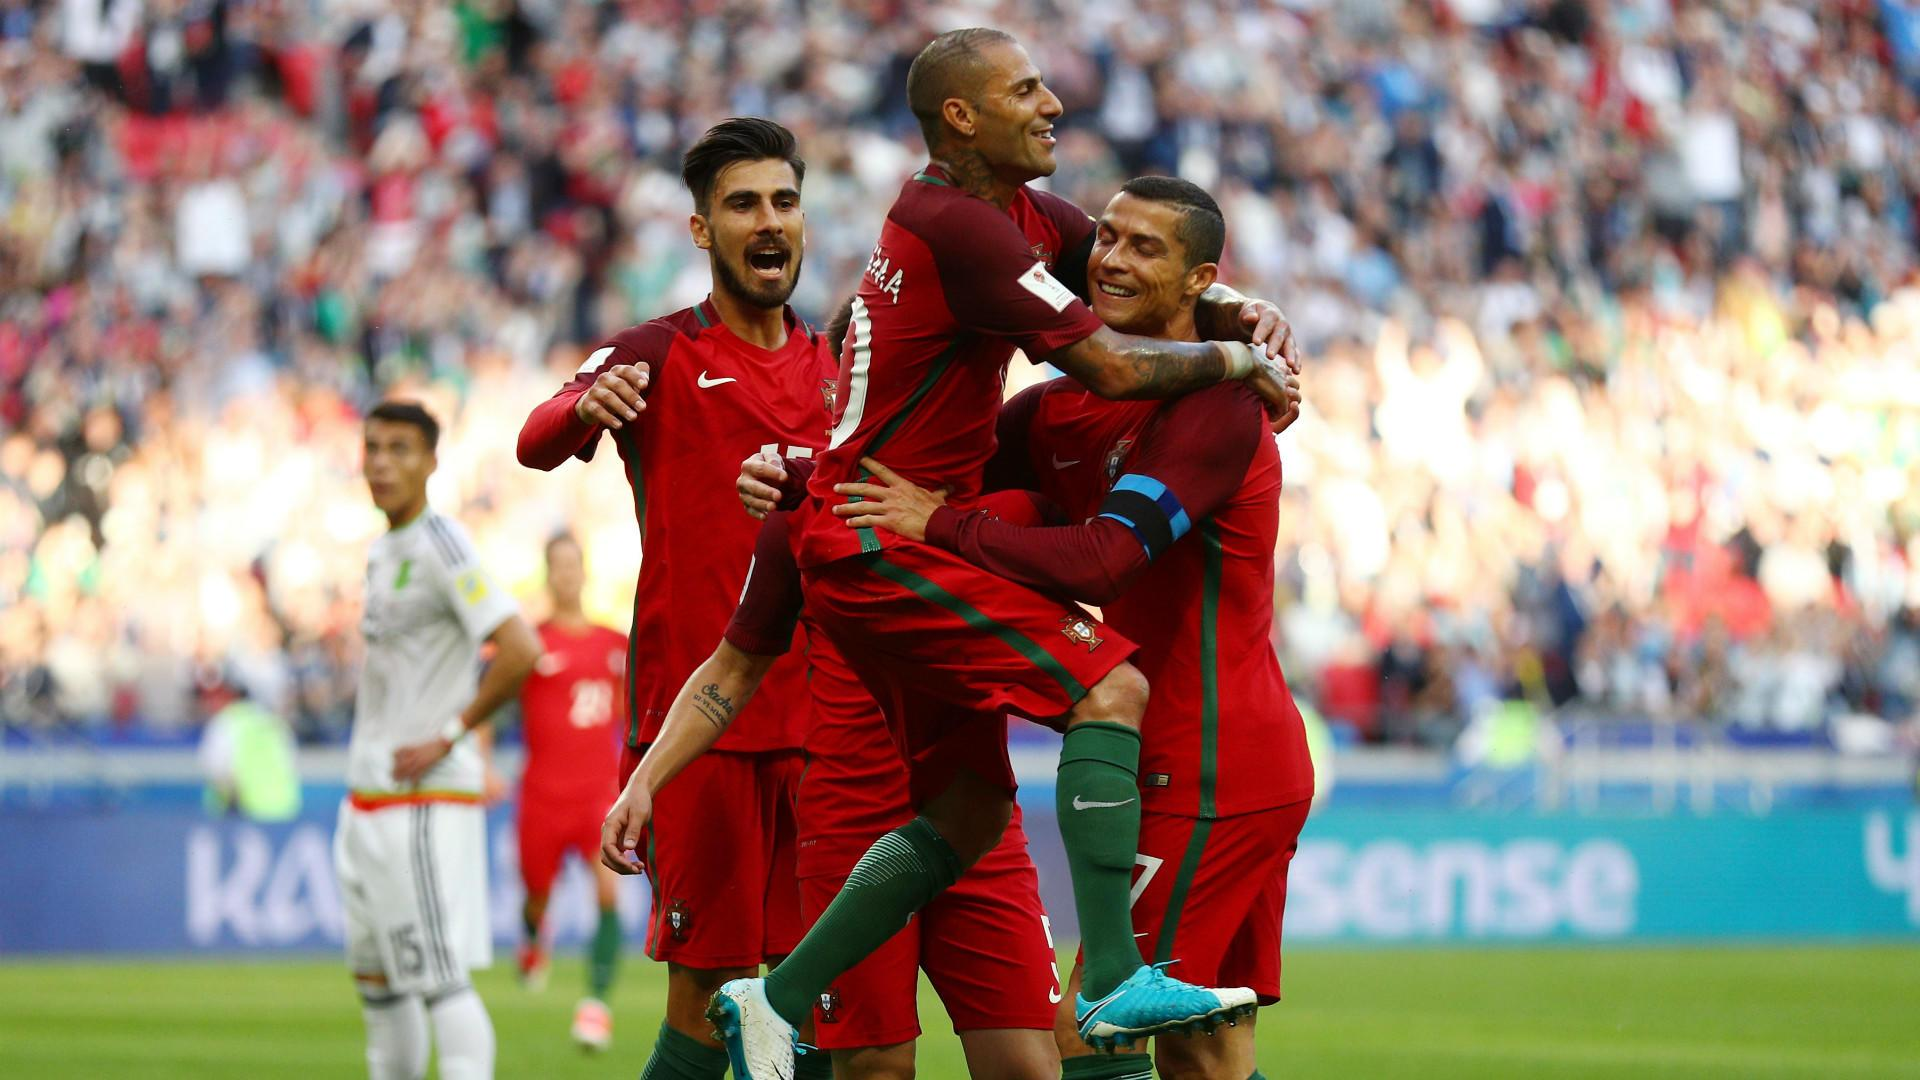 Portugal vs Mexico Confederation Cup group stage match end in draw